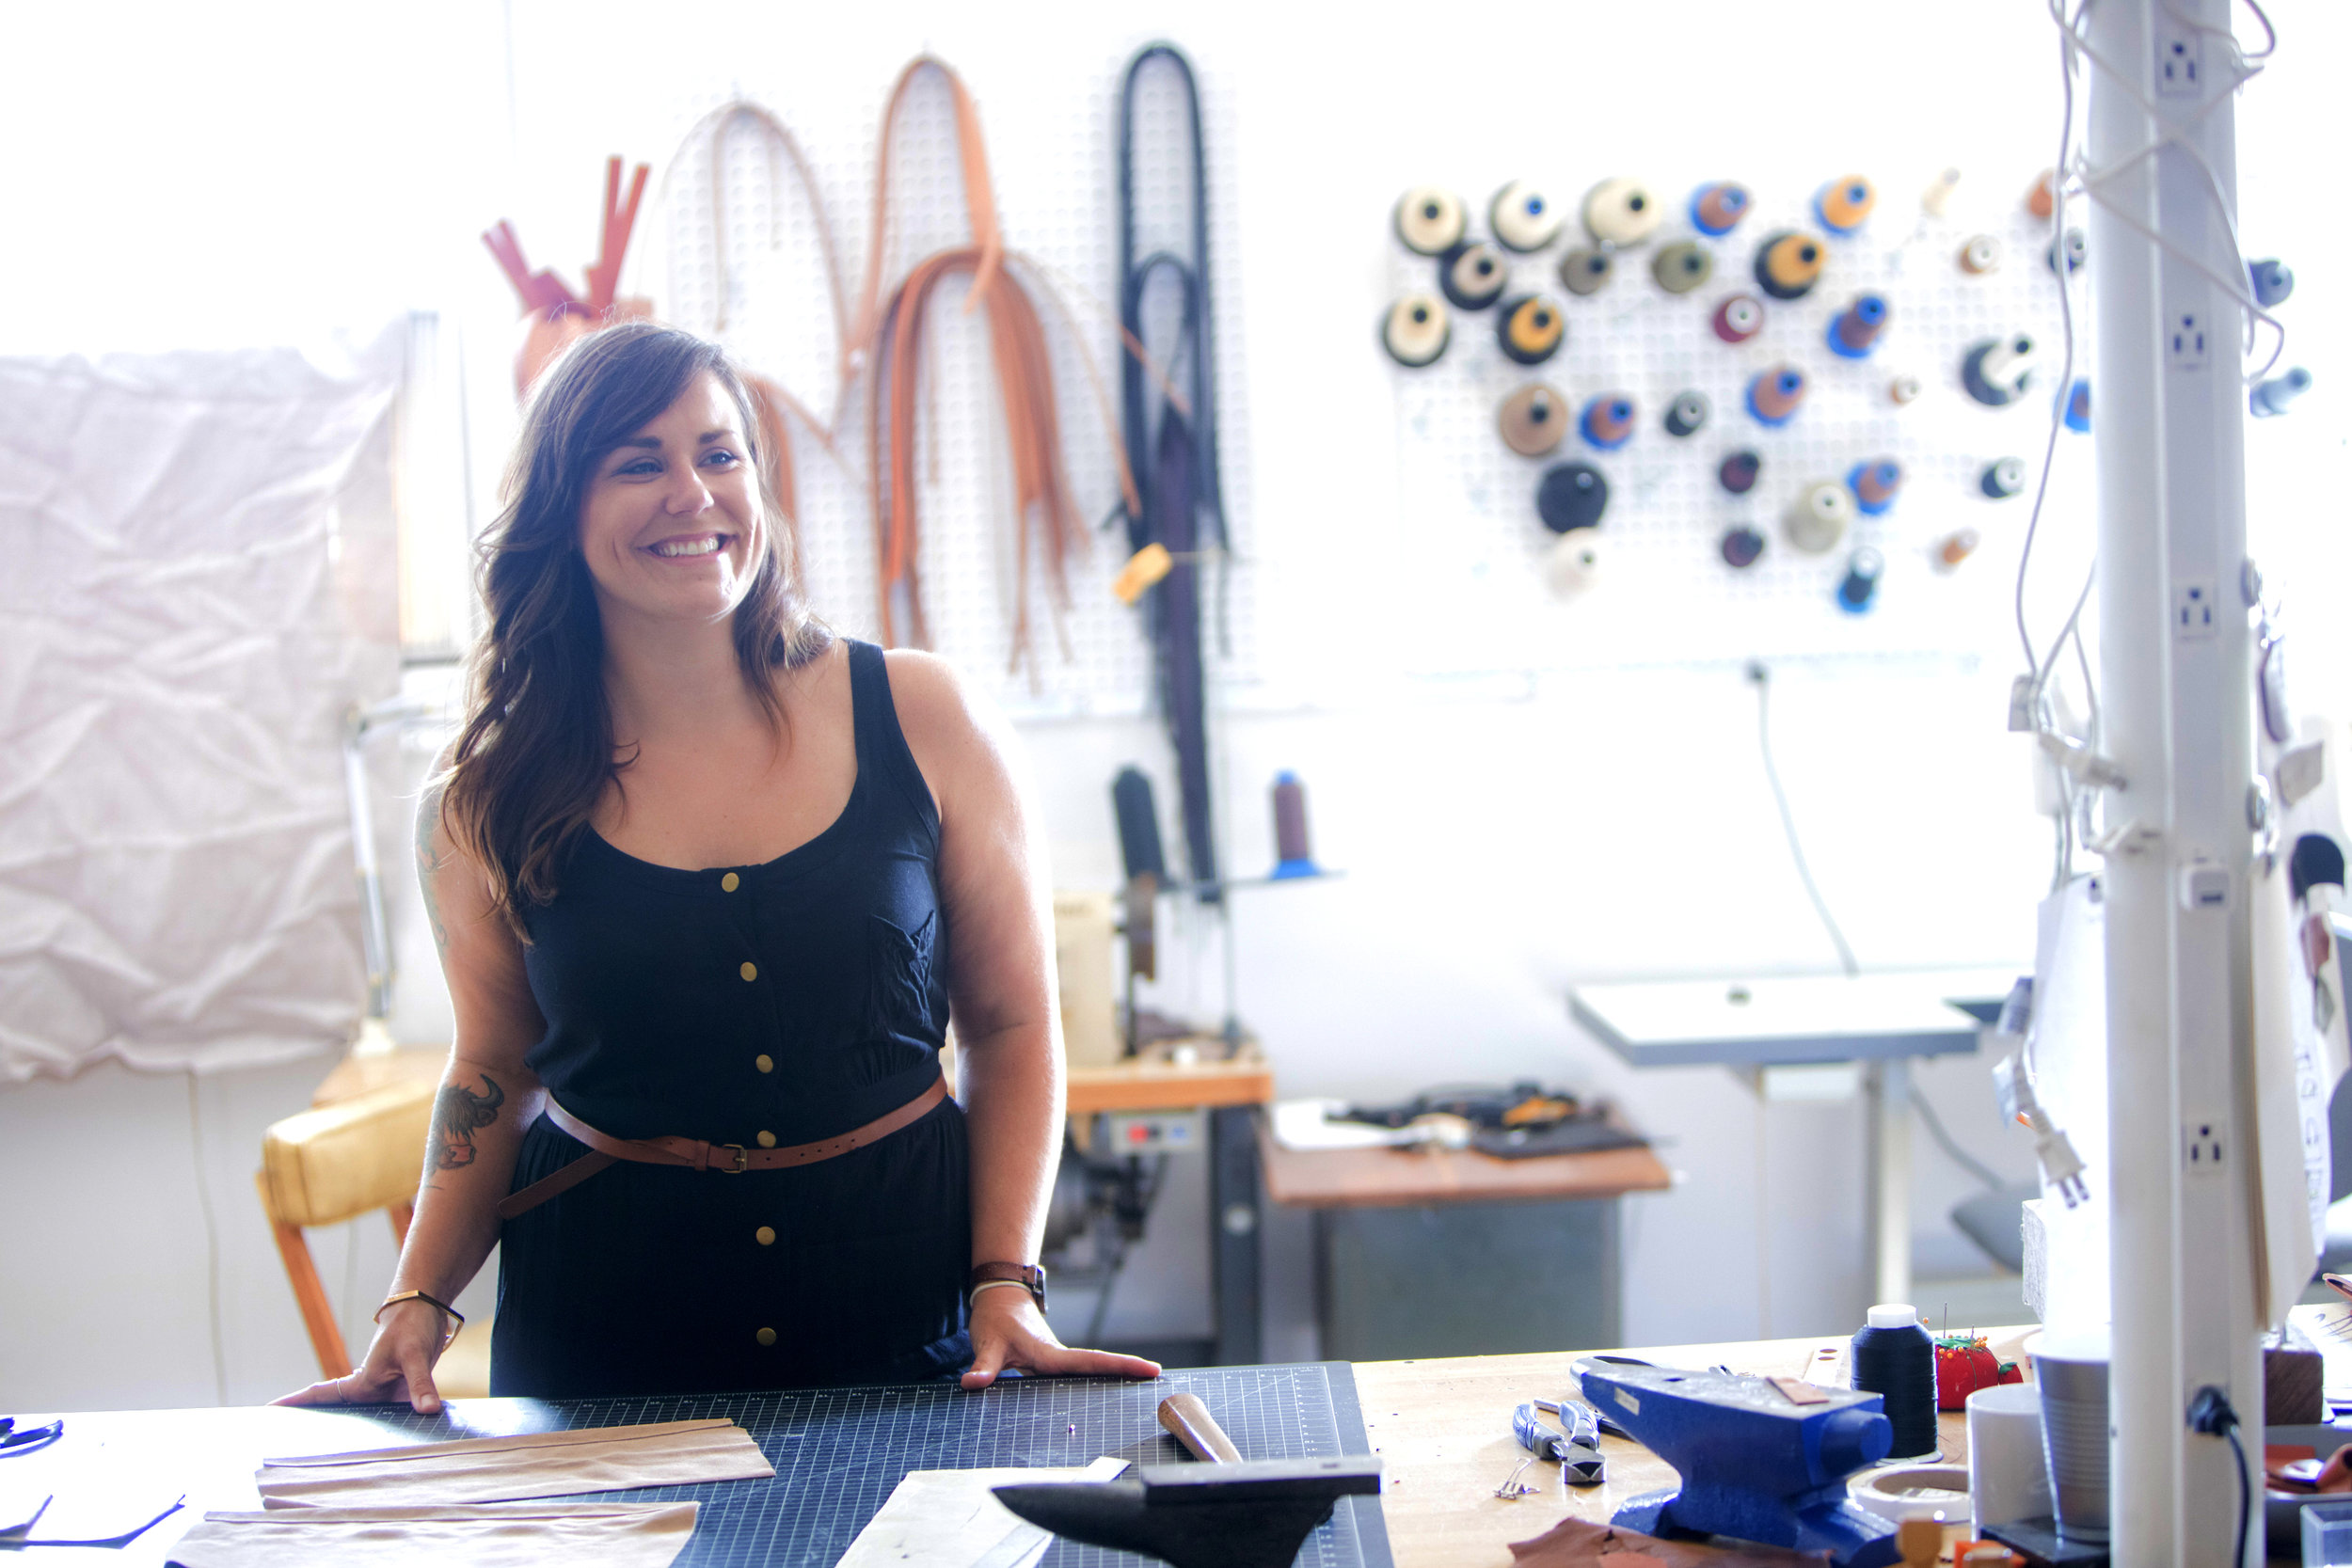 Erin, founder of Awl Snap